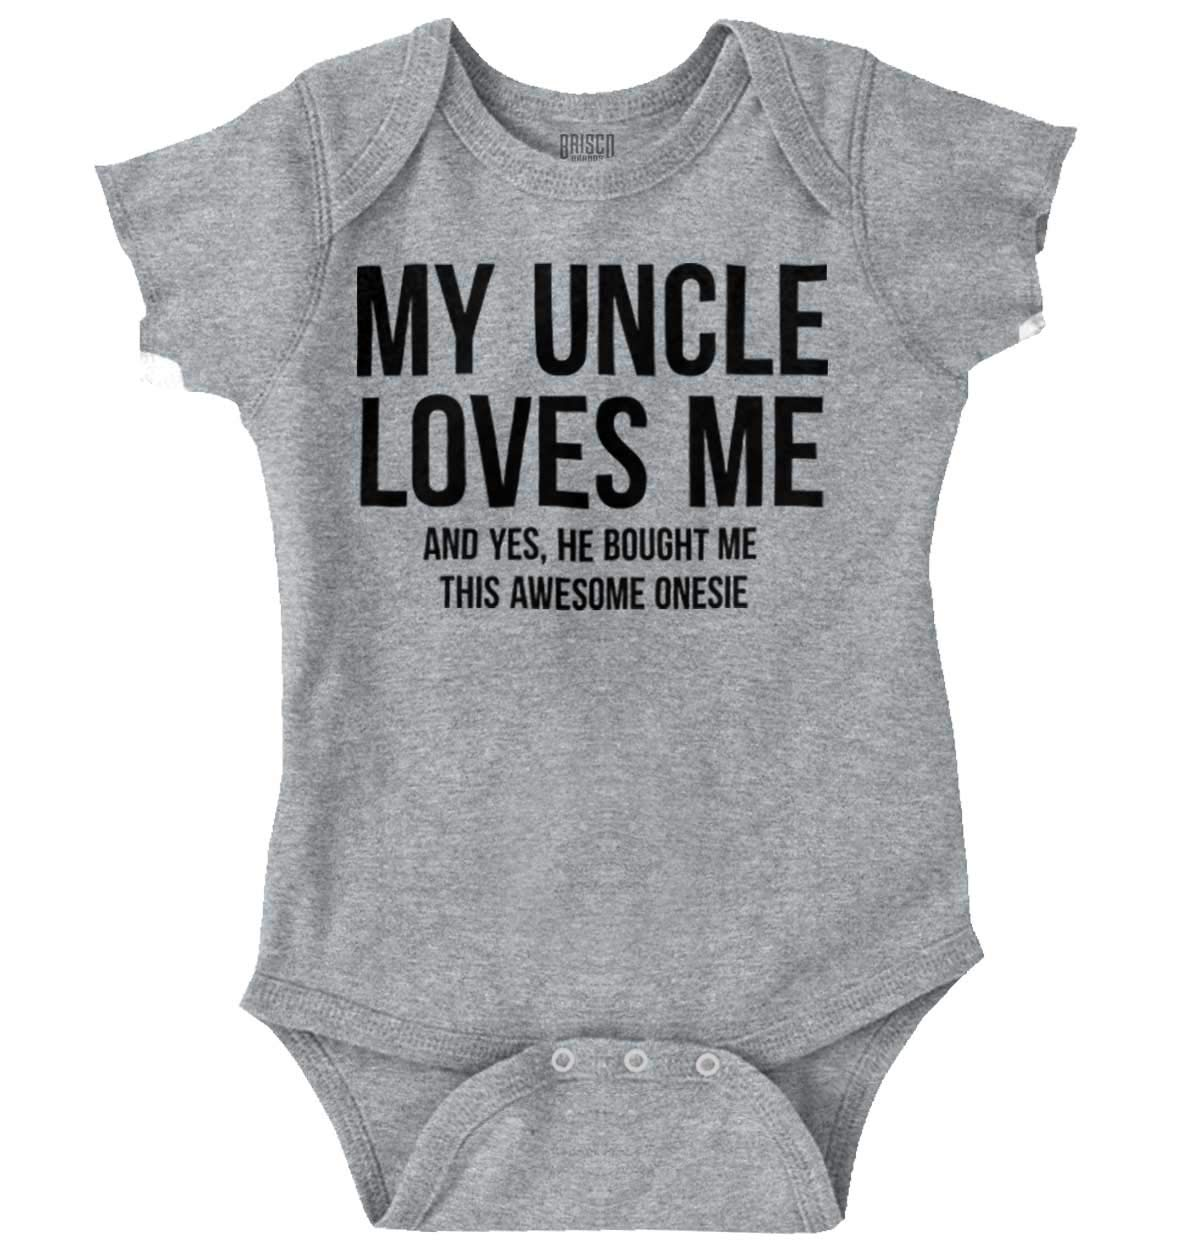 My Uncle Loves Me and Bought Me This Awesome Shirt| Funny Romper Bodysuit